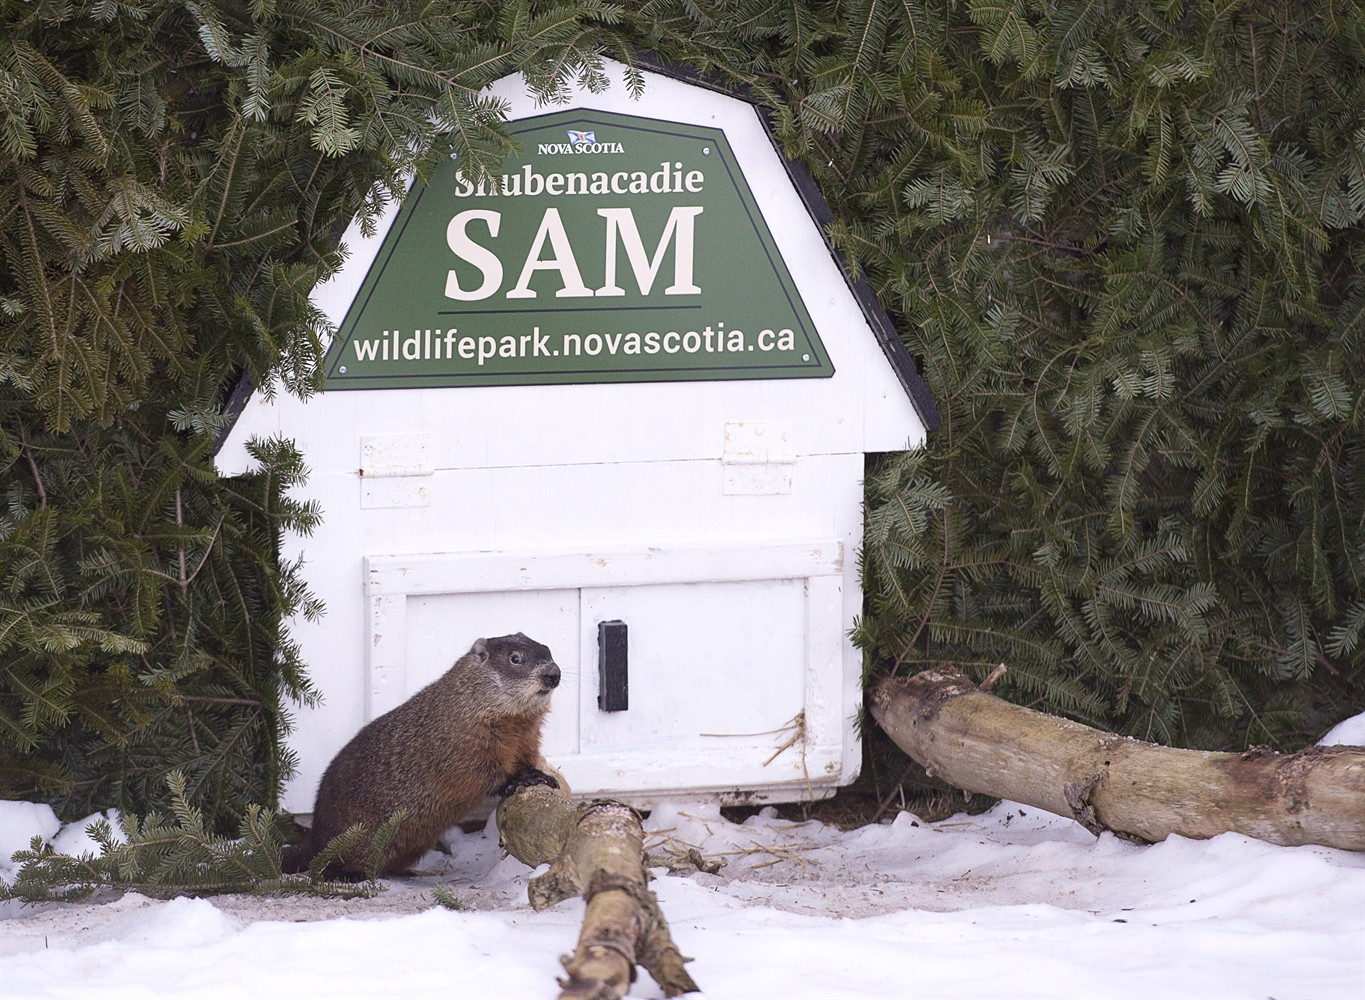 Canadian groundhogs issue clashing weather predictions